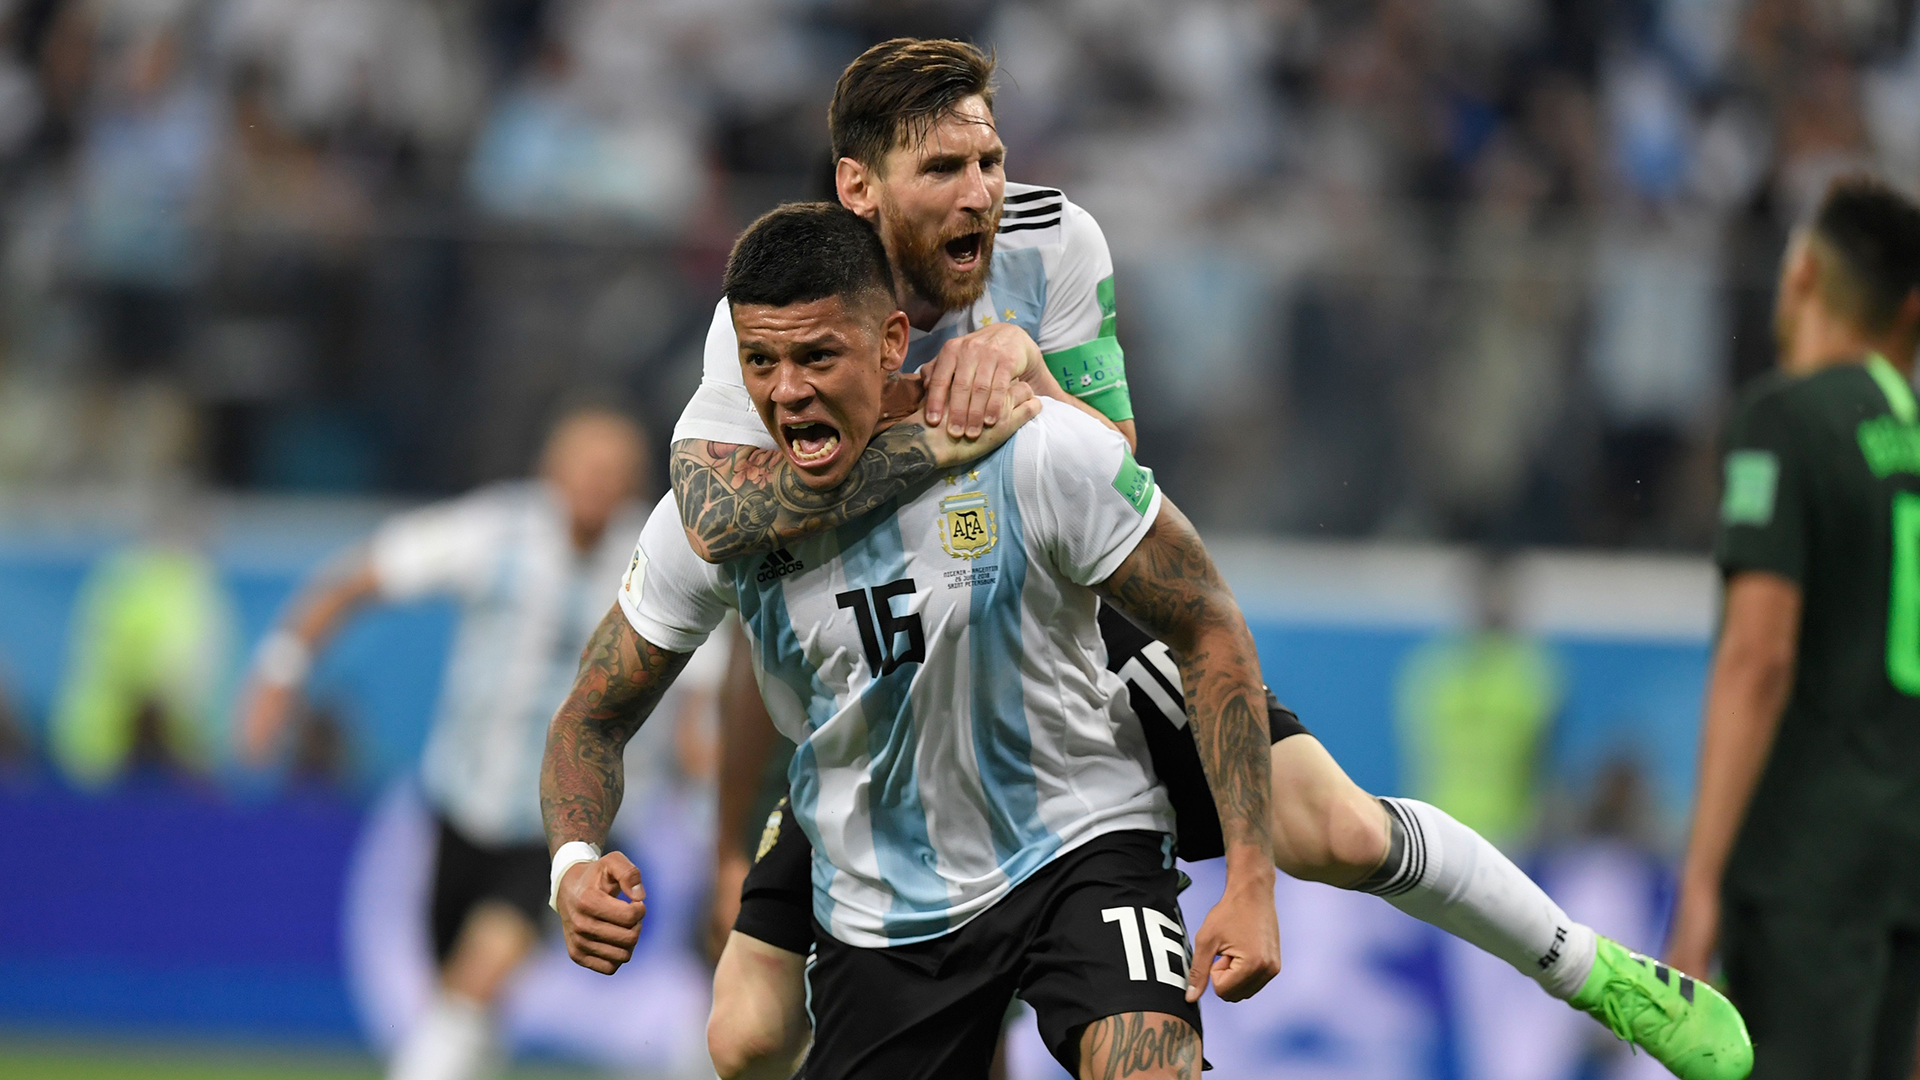 Sampaoli planning to use Messi as a false nine against France